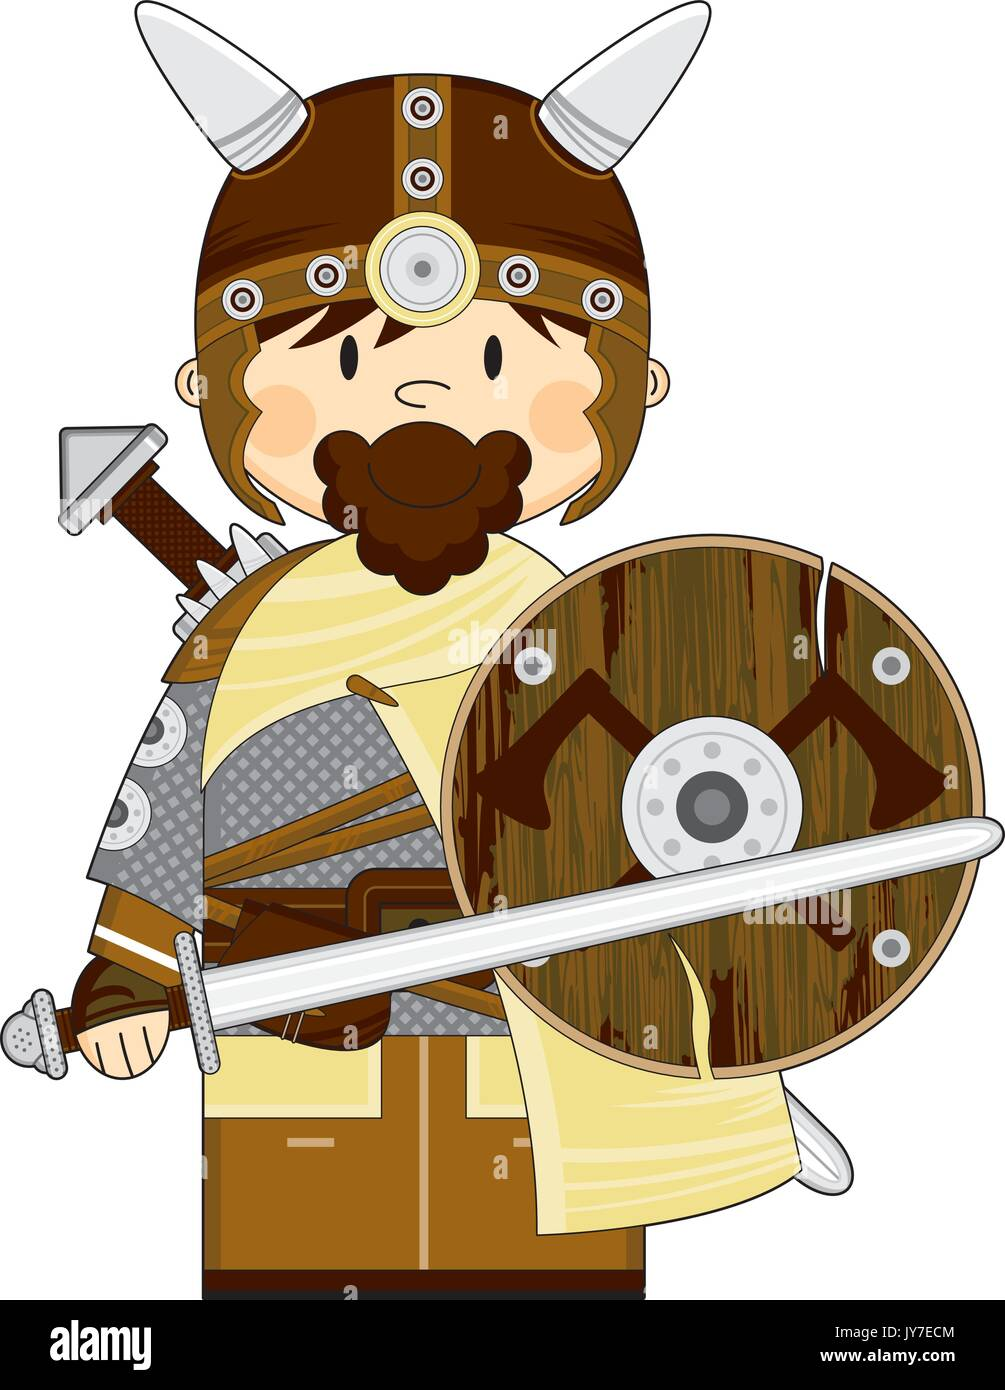 Shield Sword Cartoon Stockfotos & Shield Sword Cartoon Bilder - Alamy